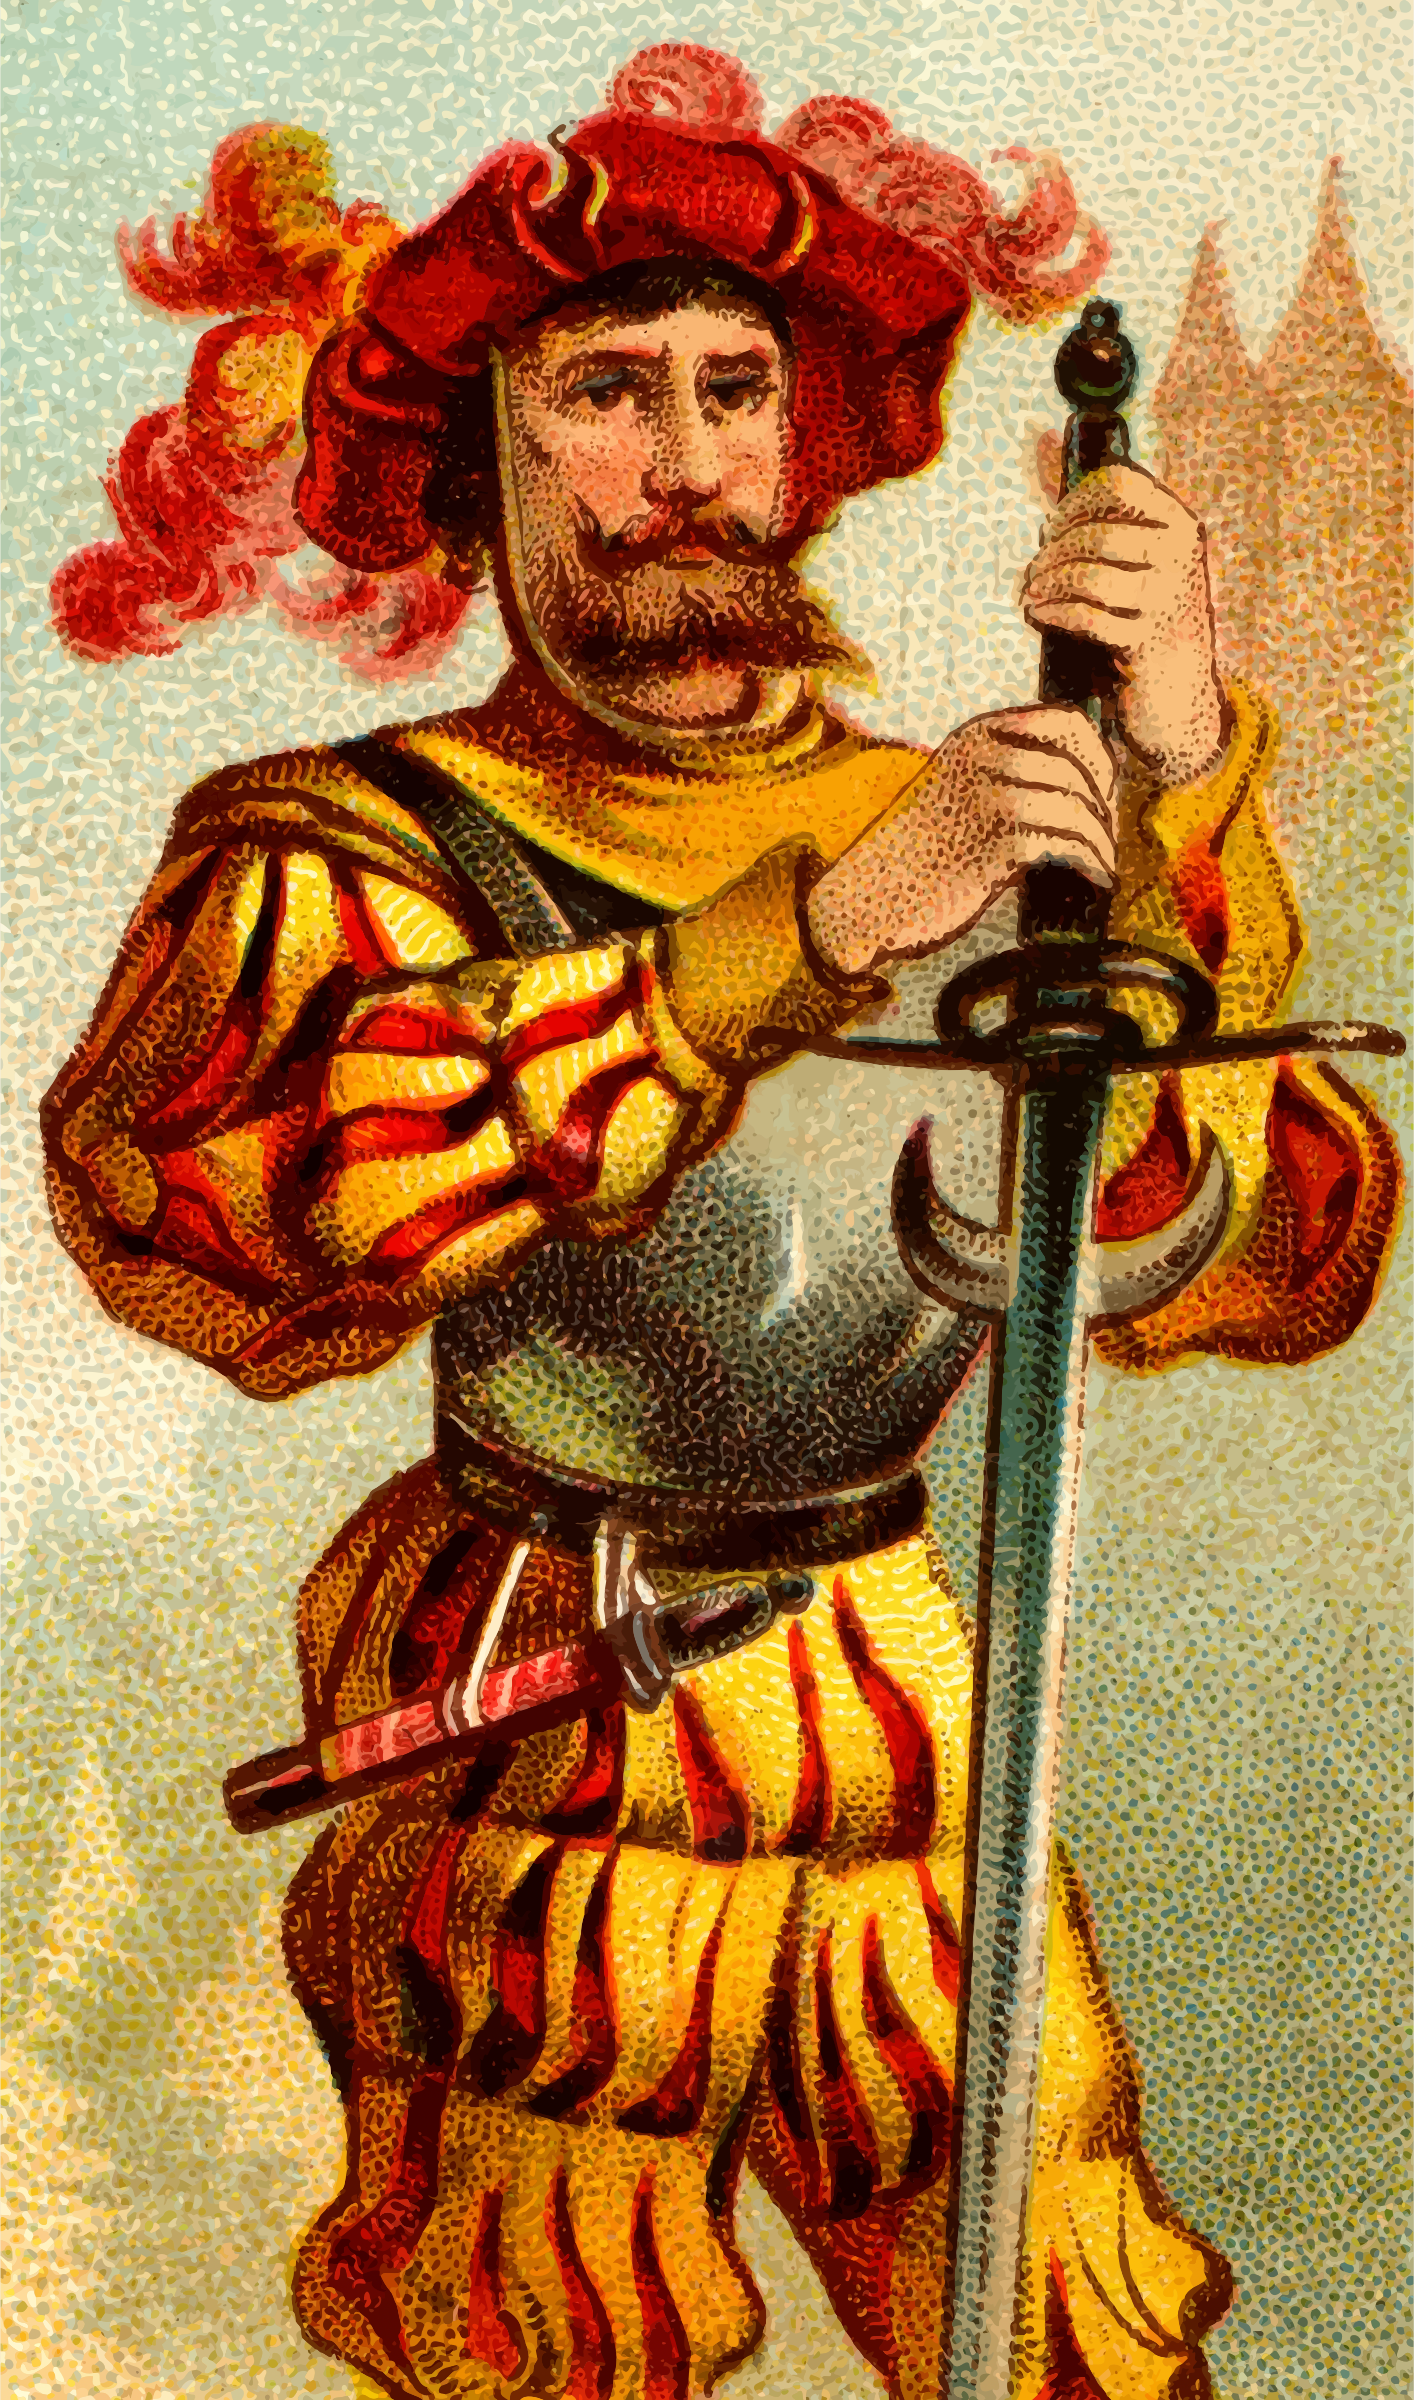 Cigarette card - Two Handed Sword by Firkin